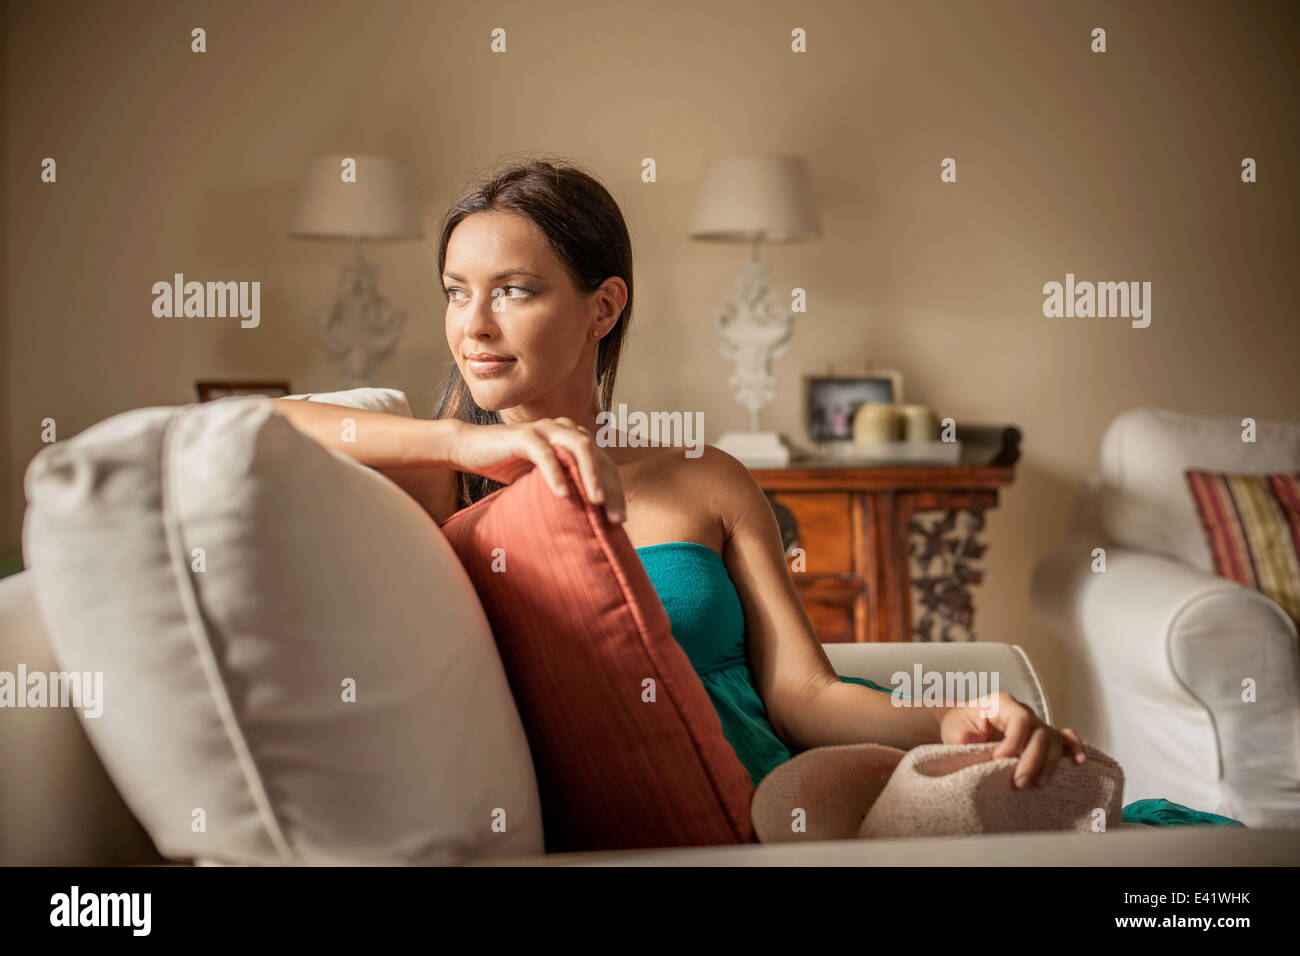 Young contemplative woman sitting in armchair - Stock Image